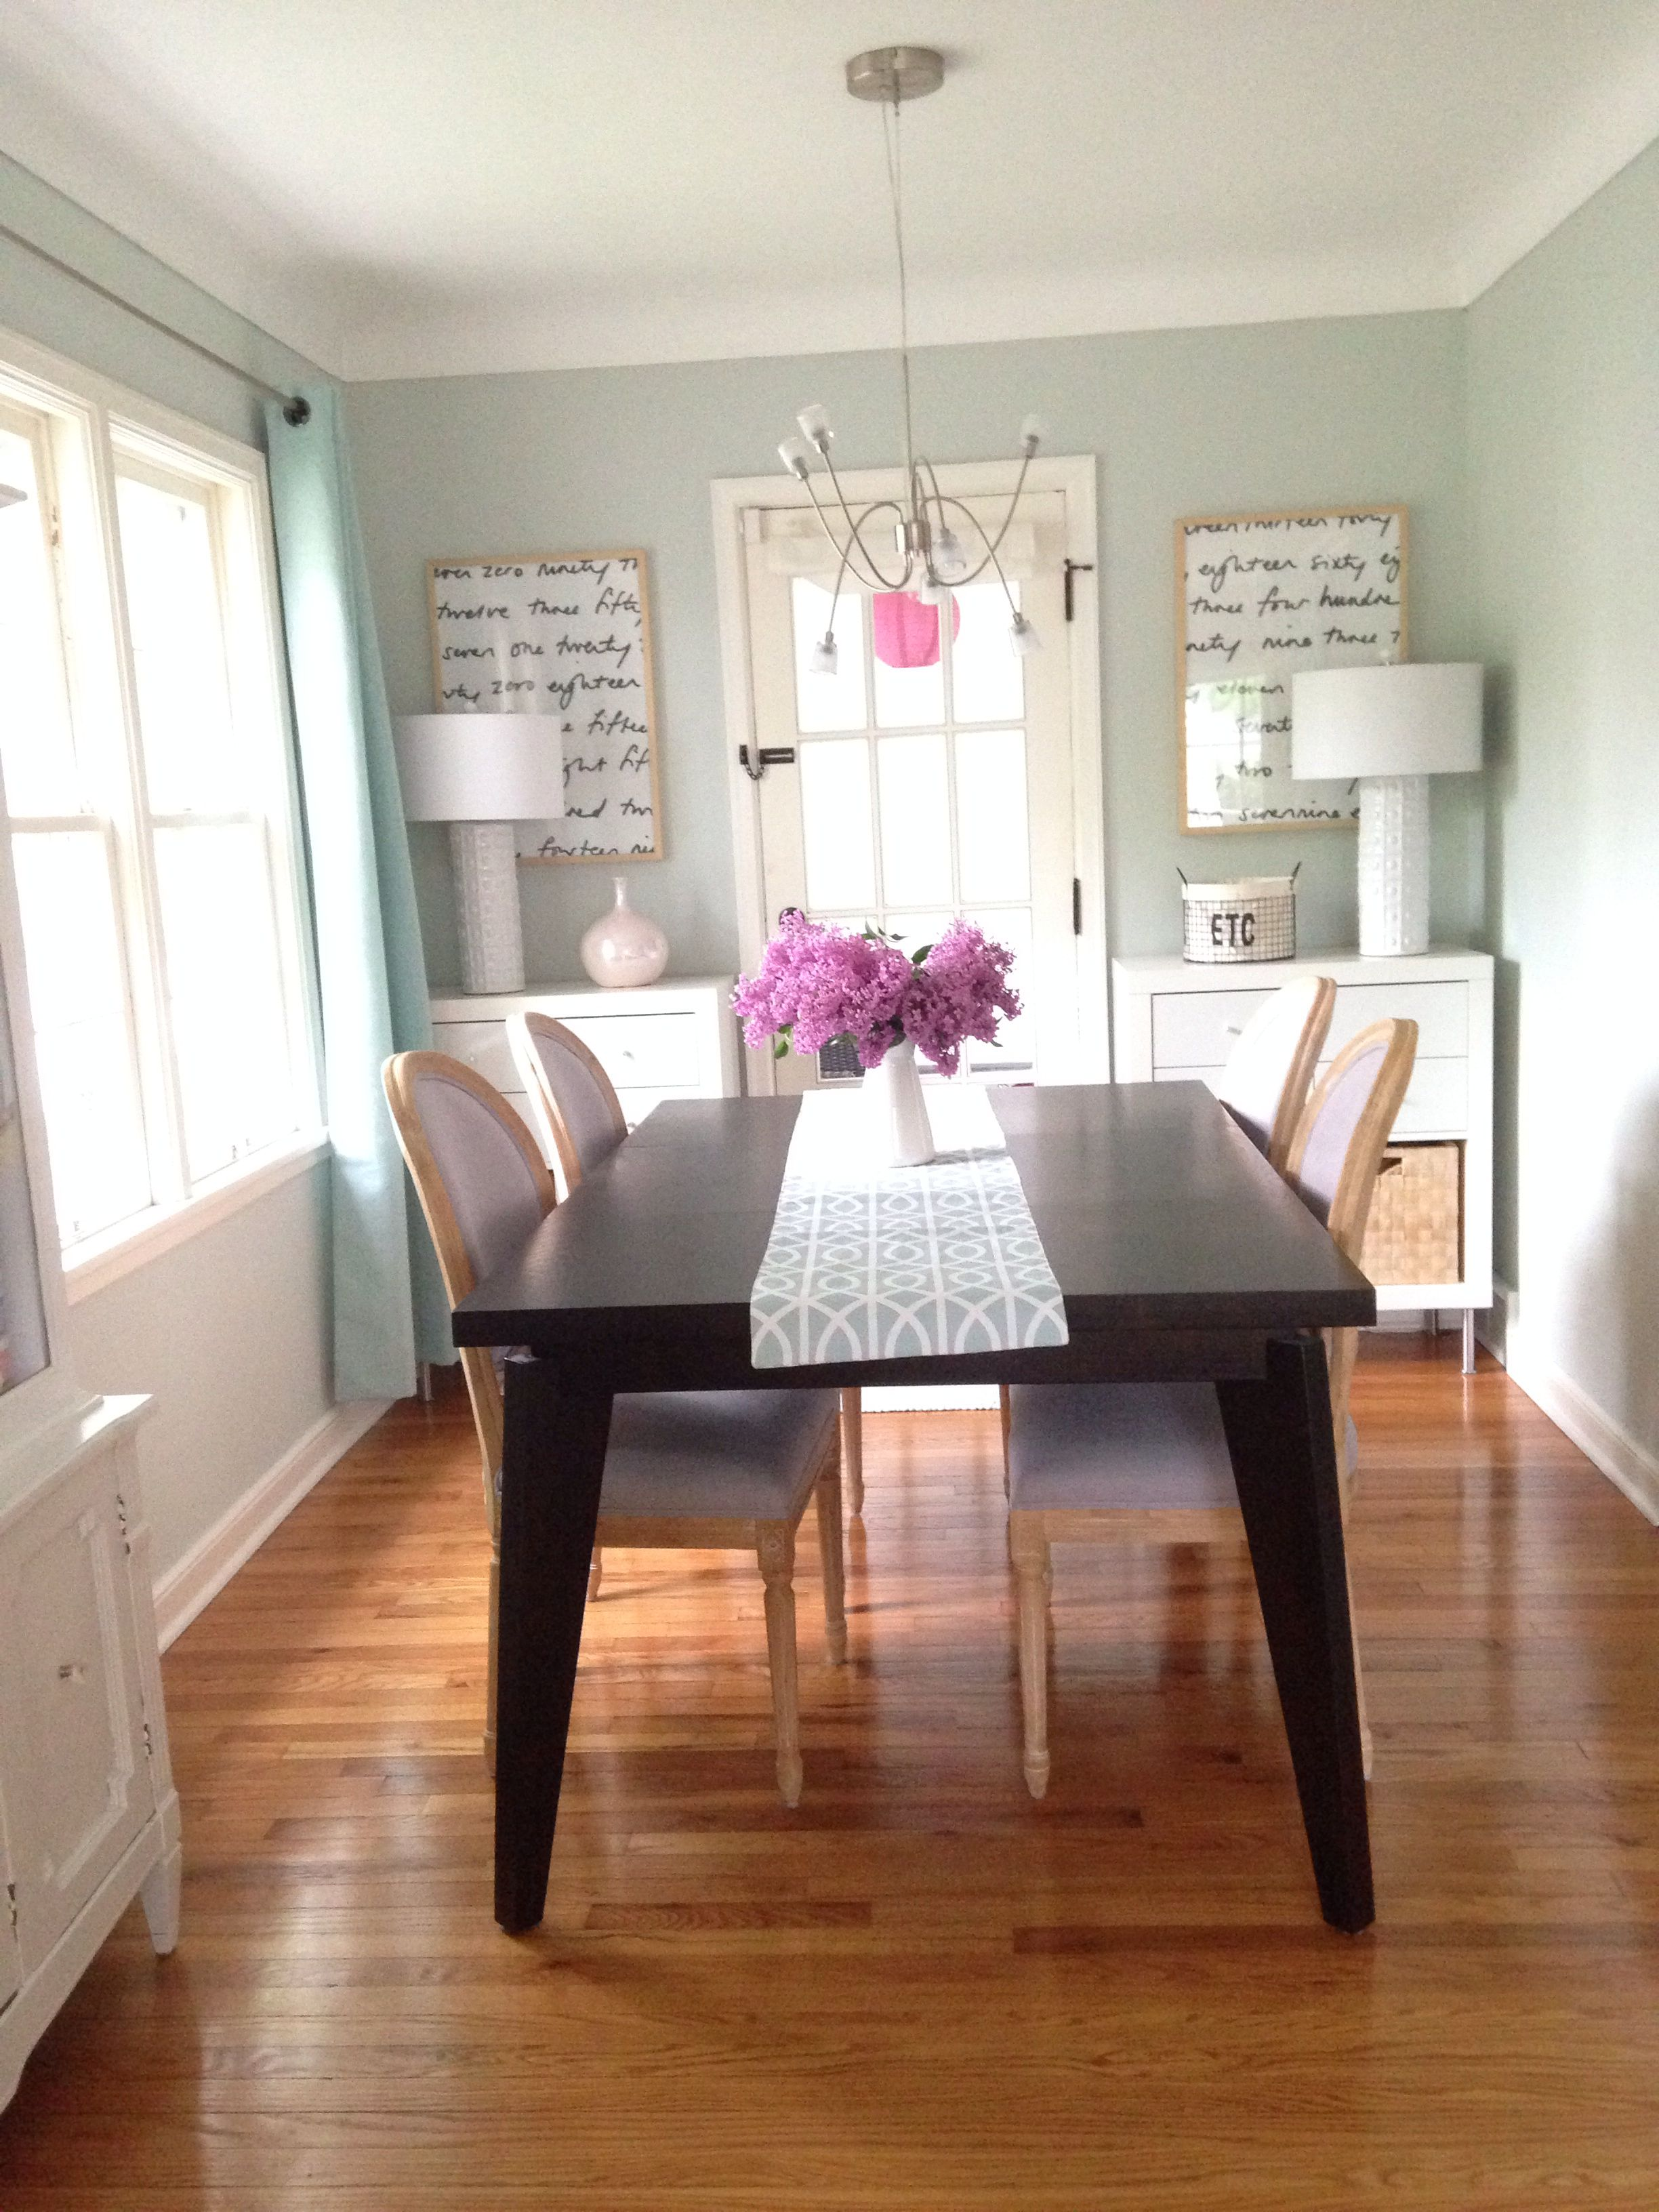 dining room paint color ideas sherwin williams | Dining Room: Paint color - Sea Salt by Sherwin Williams ...